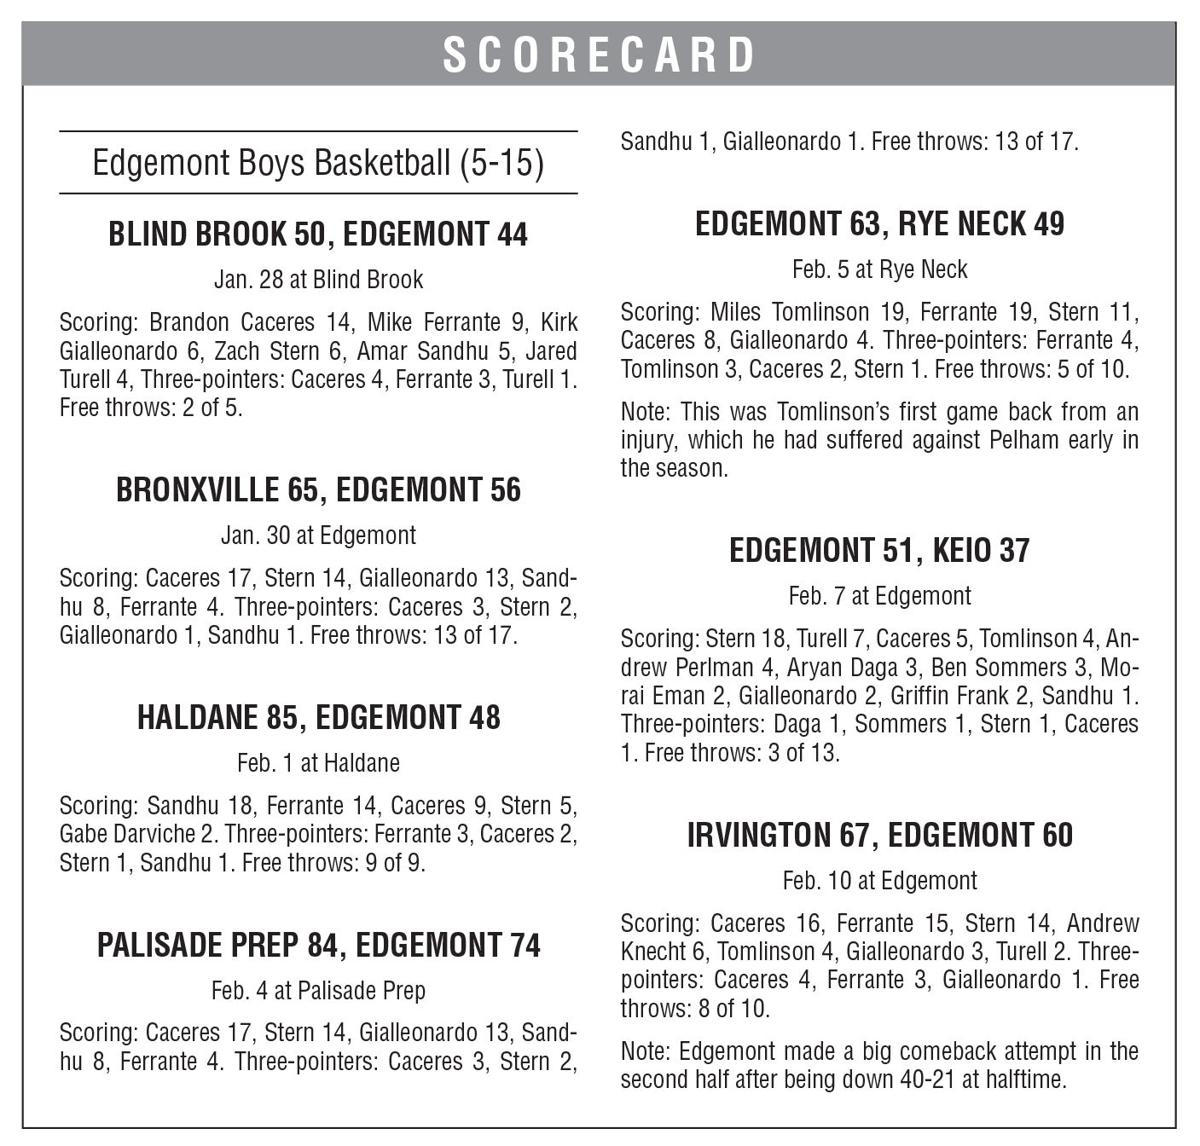 Edgemont boys basketball boxscore 2/14 issue